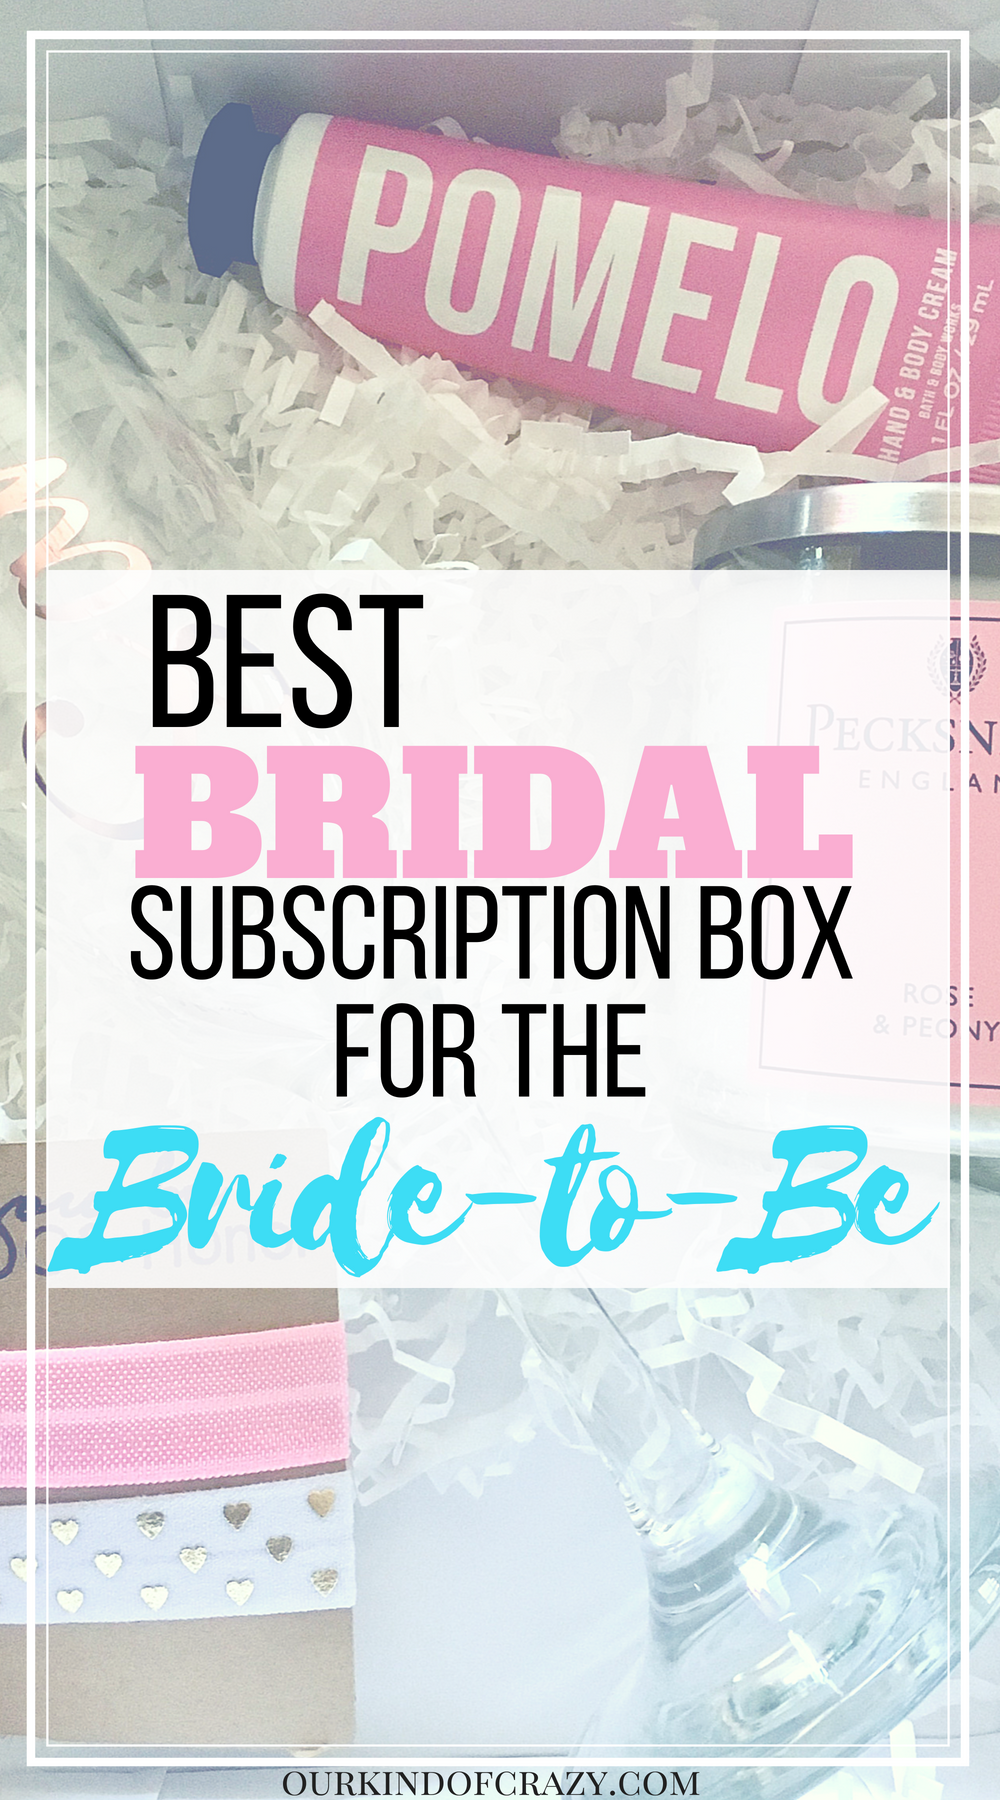 Bridal Subscription Boxes. Here are some of the best bridal subscription box reviews for the new bride to be. #bridesubscriptionboxes #weddingboxes